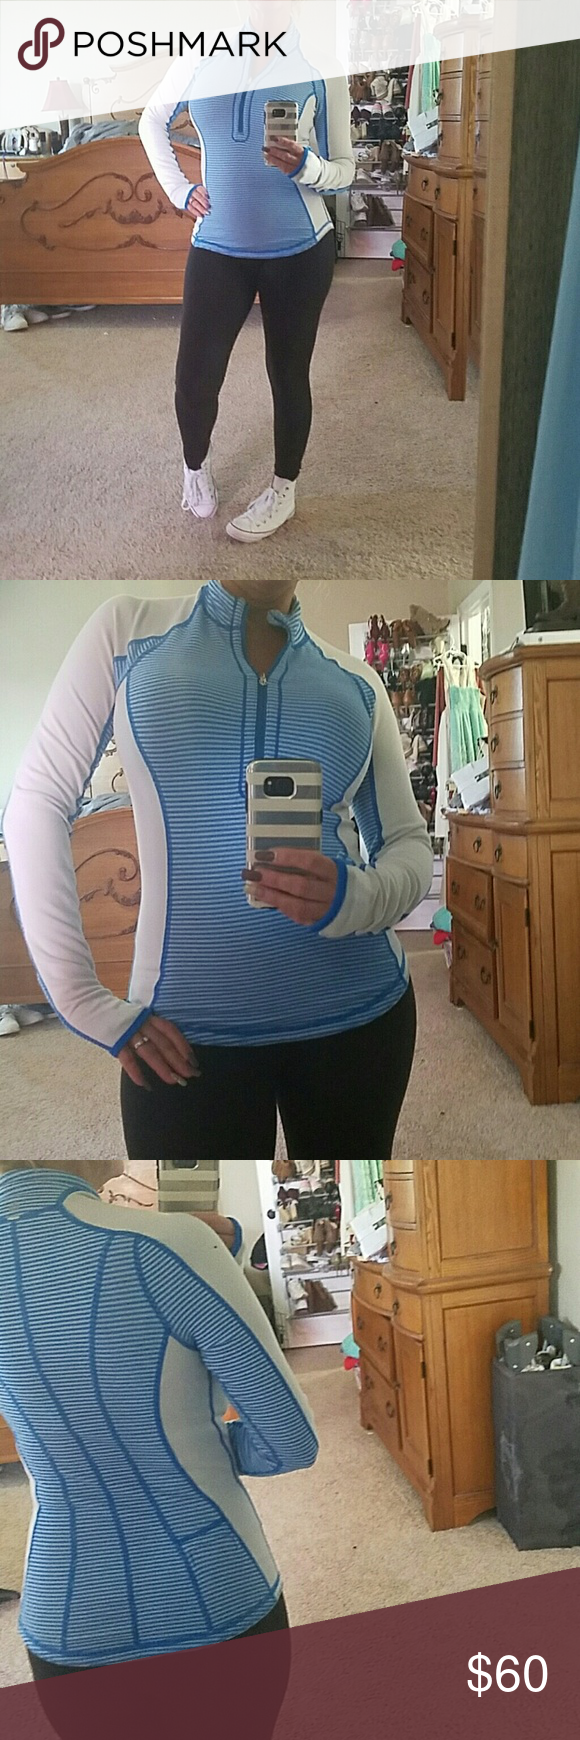 Lululemon Excellent condition very comfortable blue and white lululemon athletica Tops Sweatshirts & Hoodies